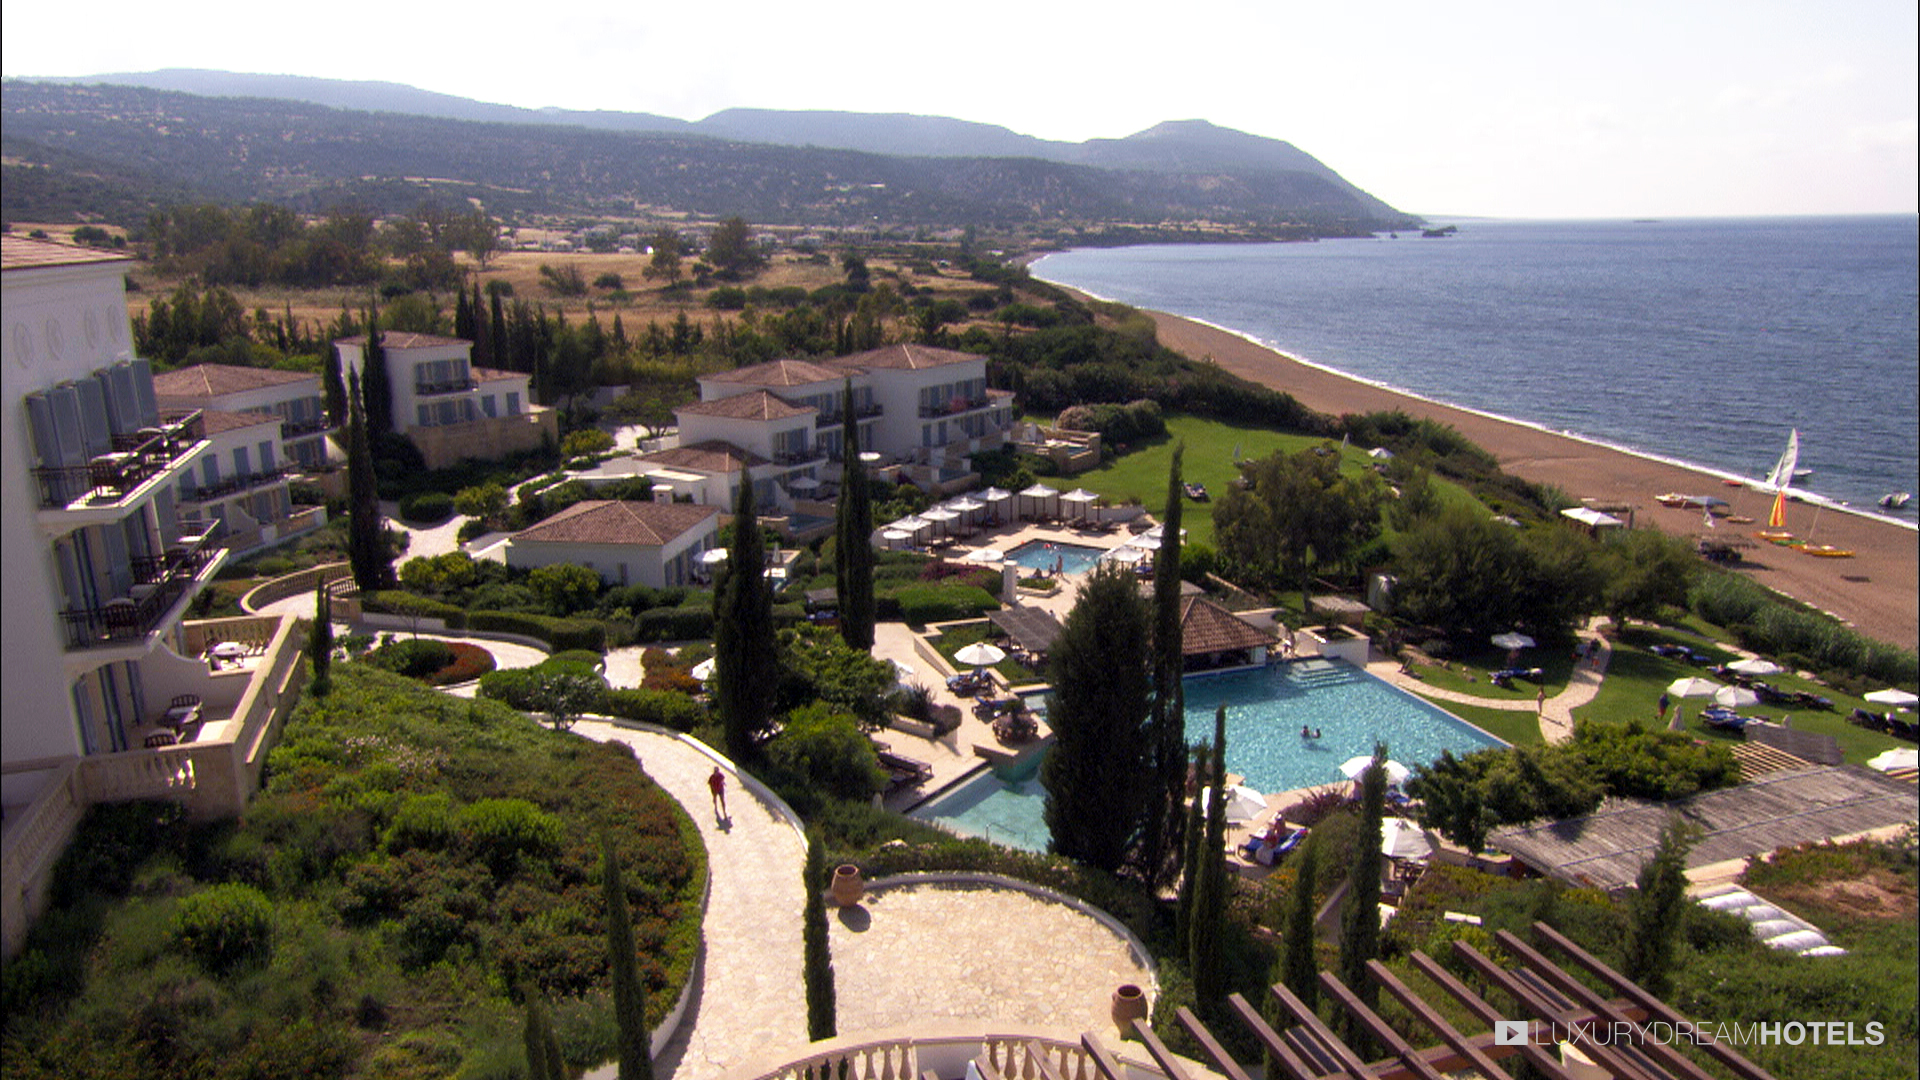 thanos-hotels-anassa-luxury-dream-hotels-53